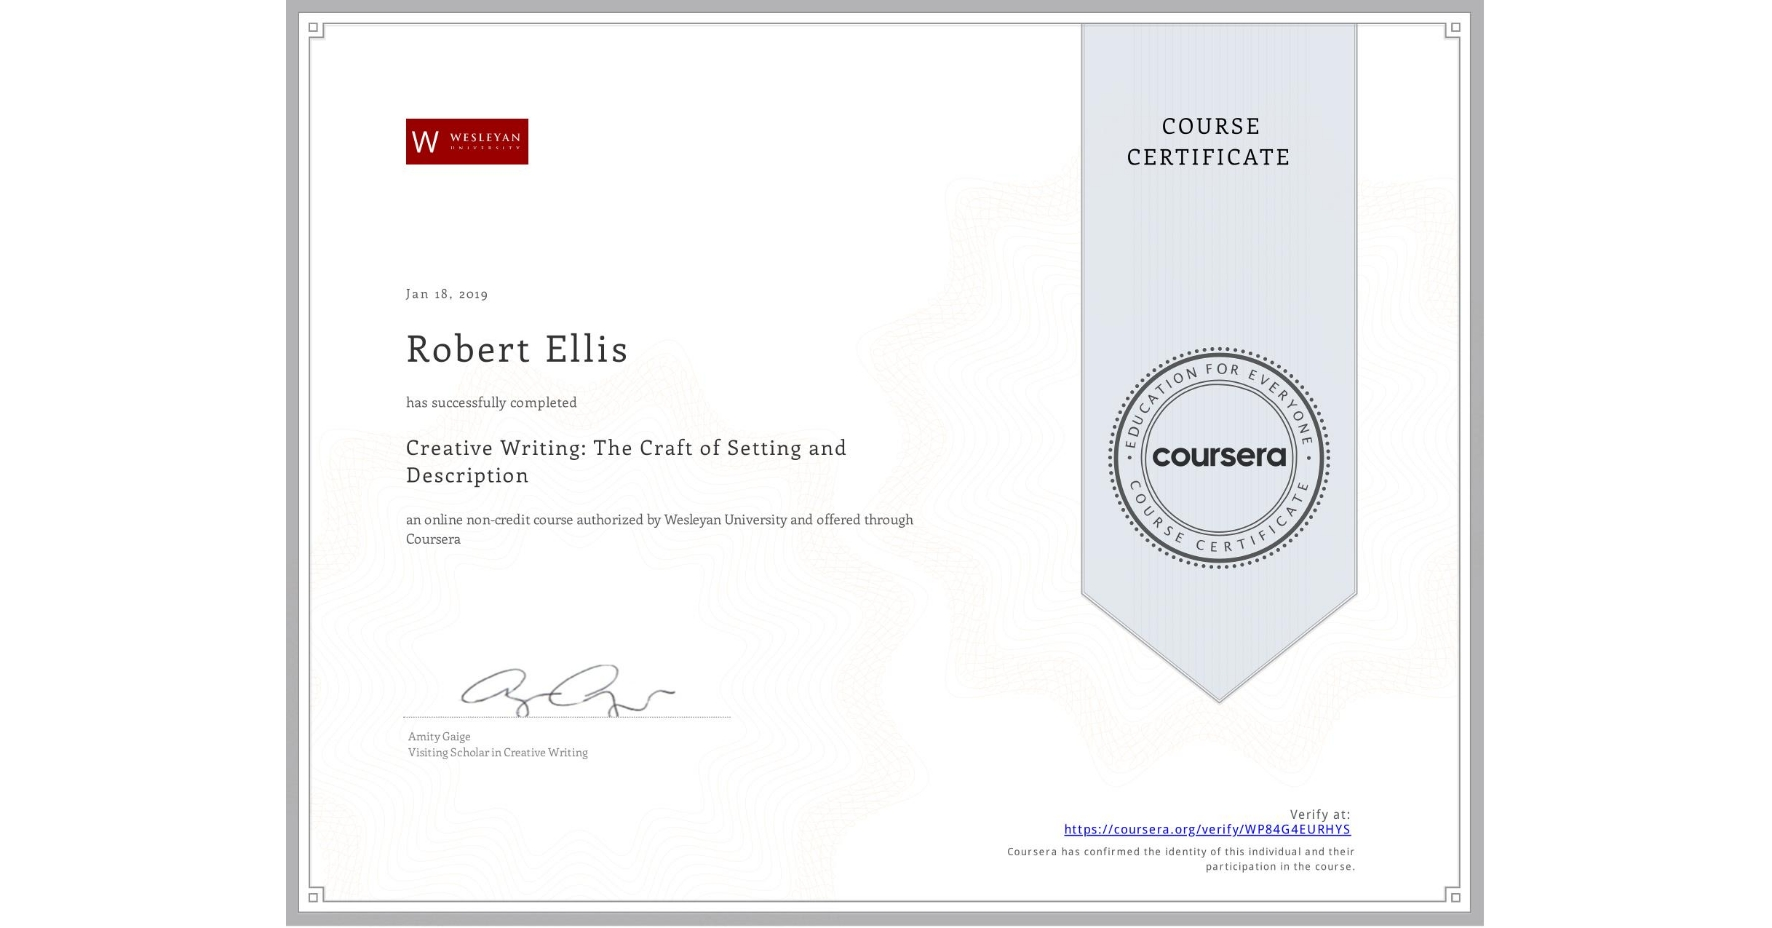 View certificate for Robert Ellis, Creative Writing: The Craft of Setting and Description, an online non-credit course authorized by Wesleyan University and offered through Coursera